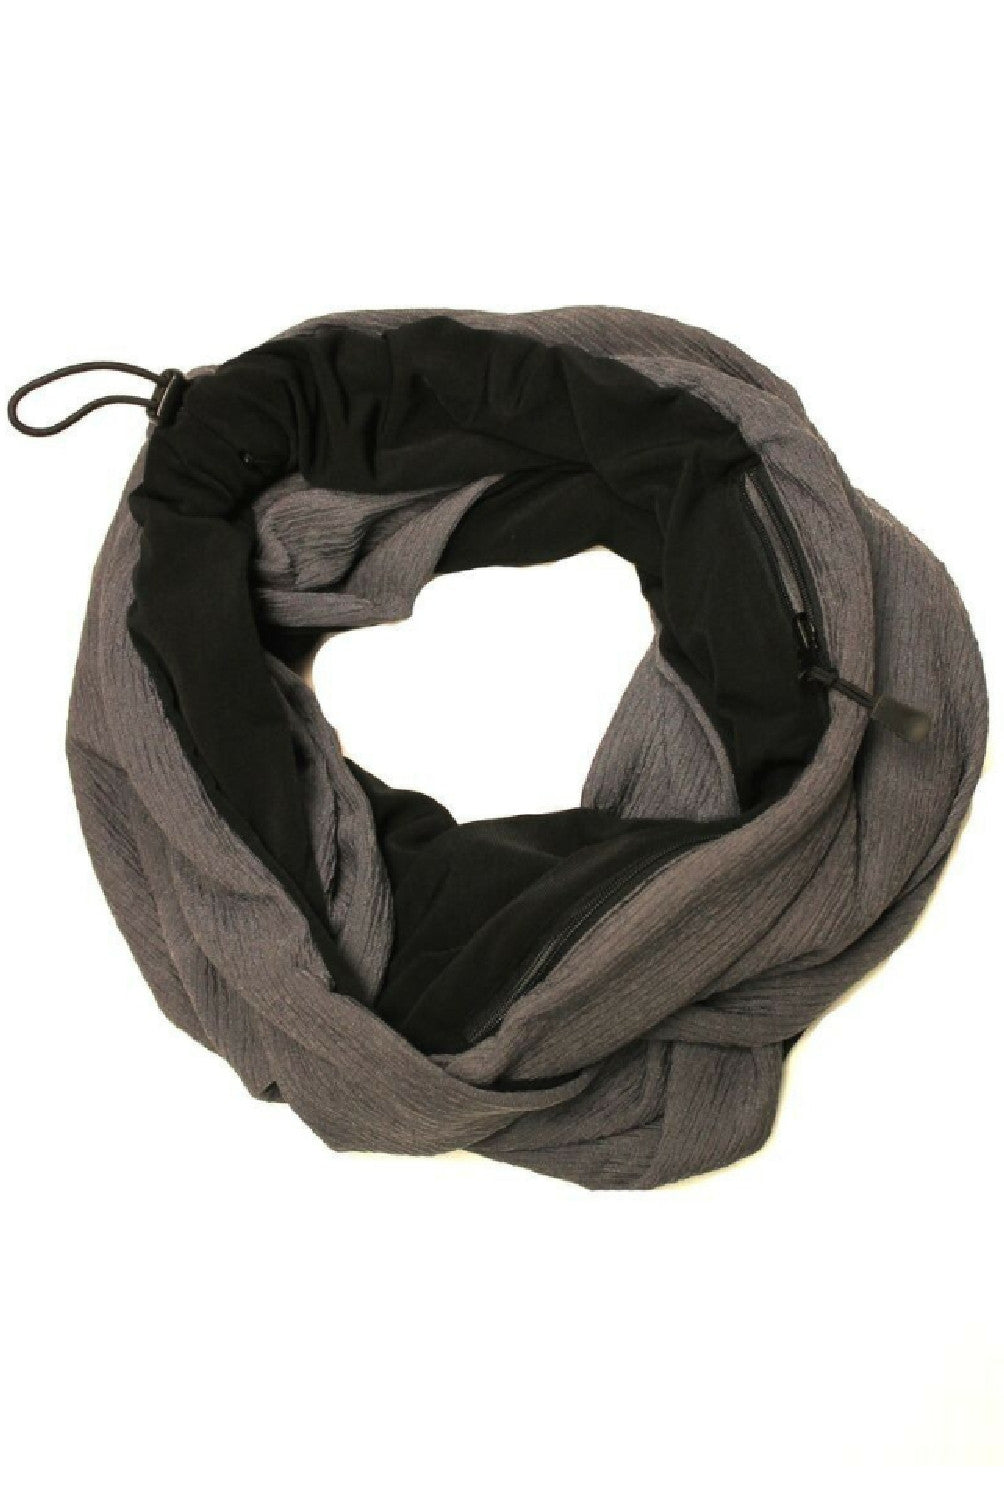 ORIGINAL Convertible Infinity Scarf with Pockets